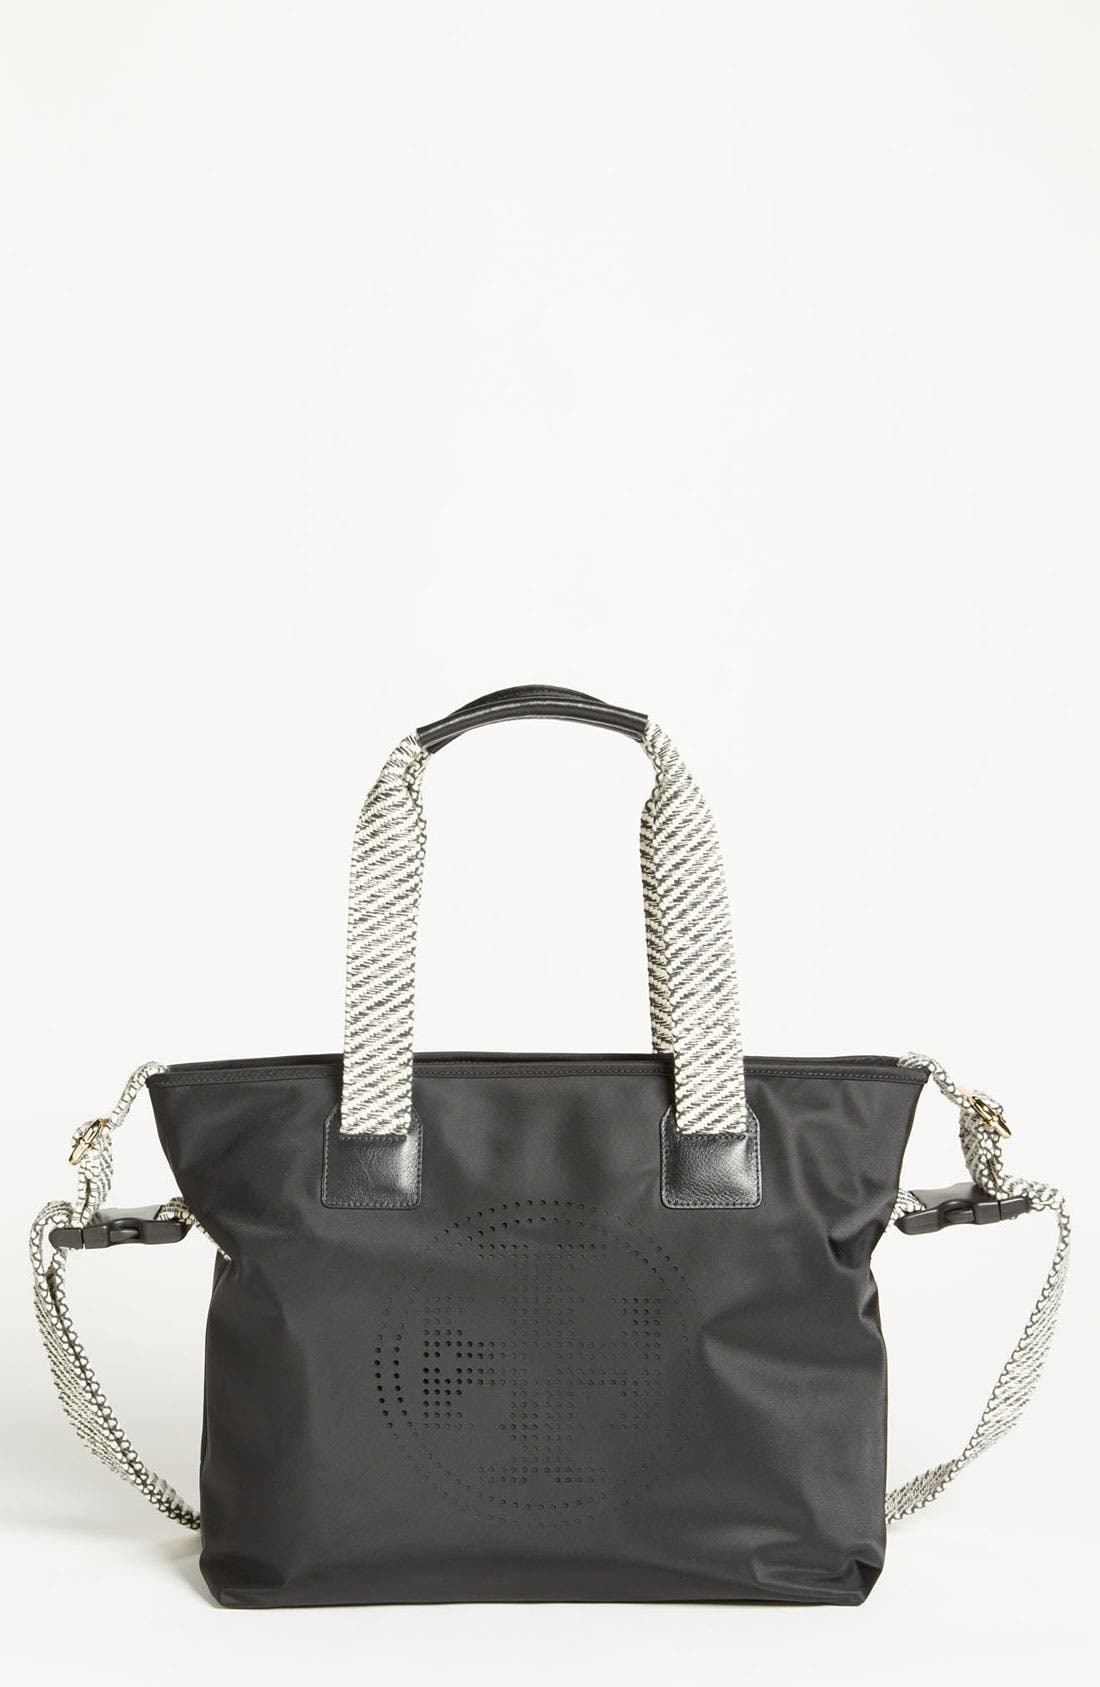 Main Image - Tory Burch Perforated Diaper Bag